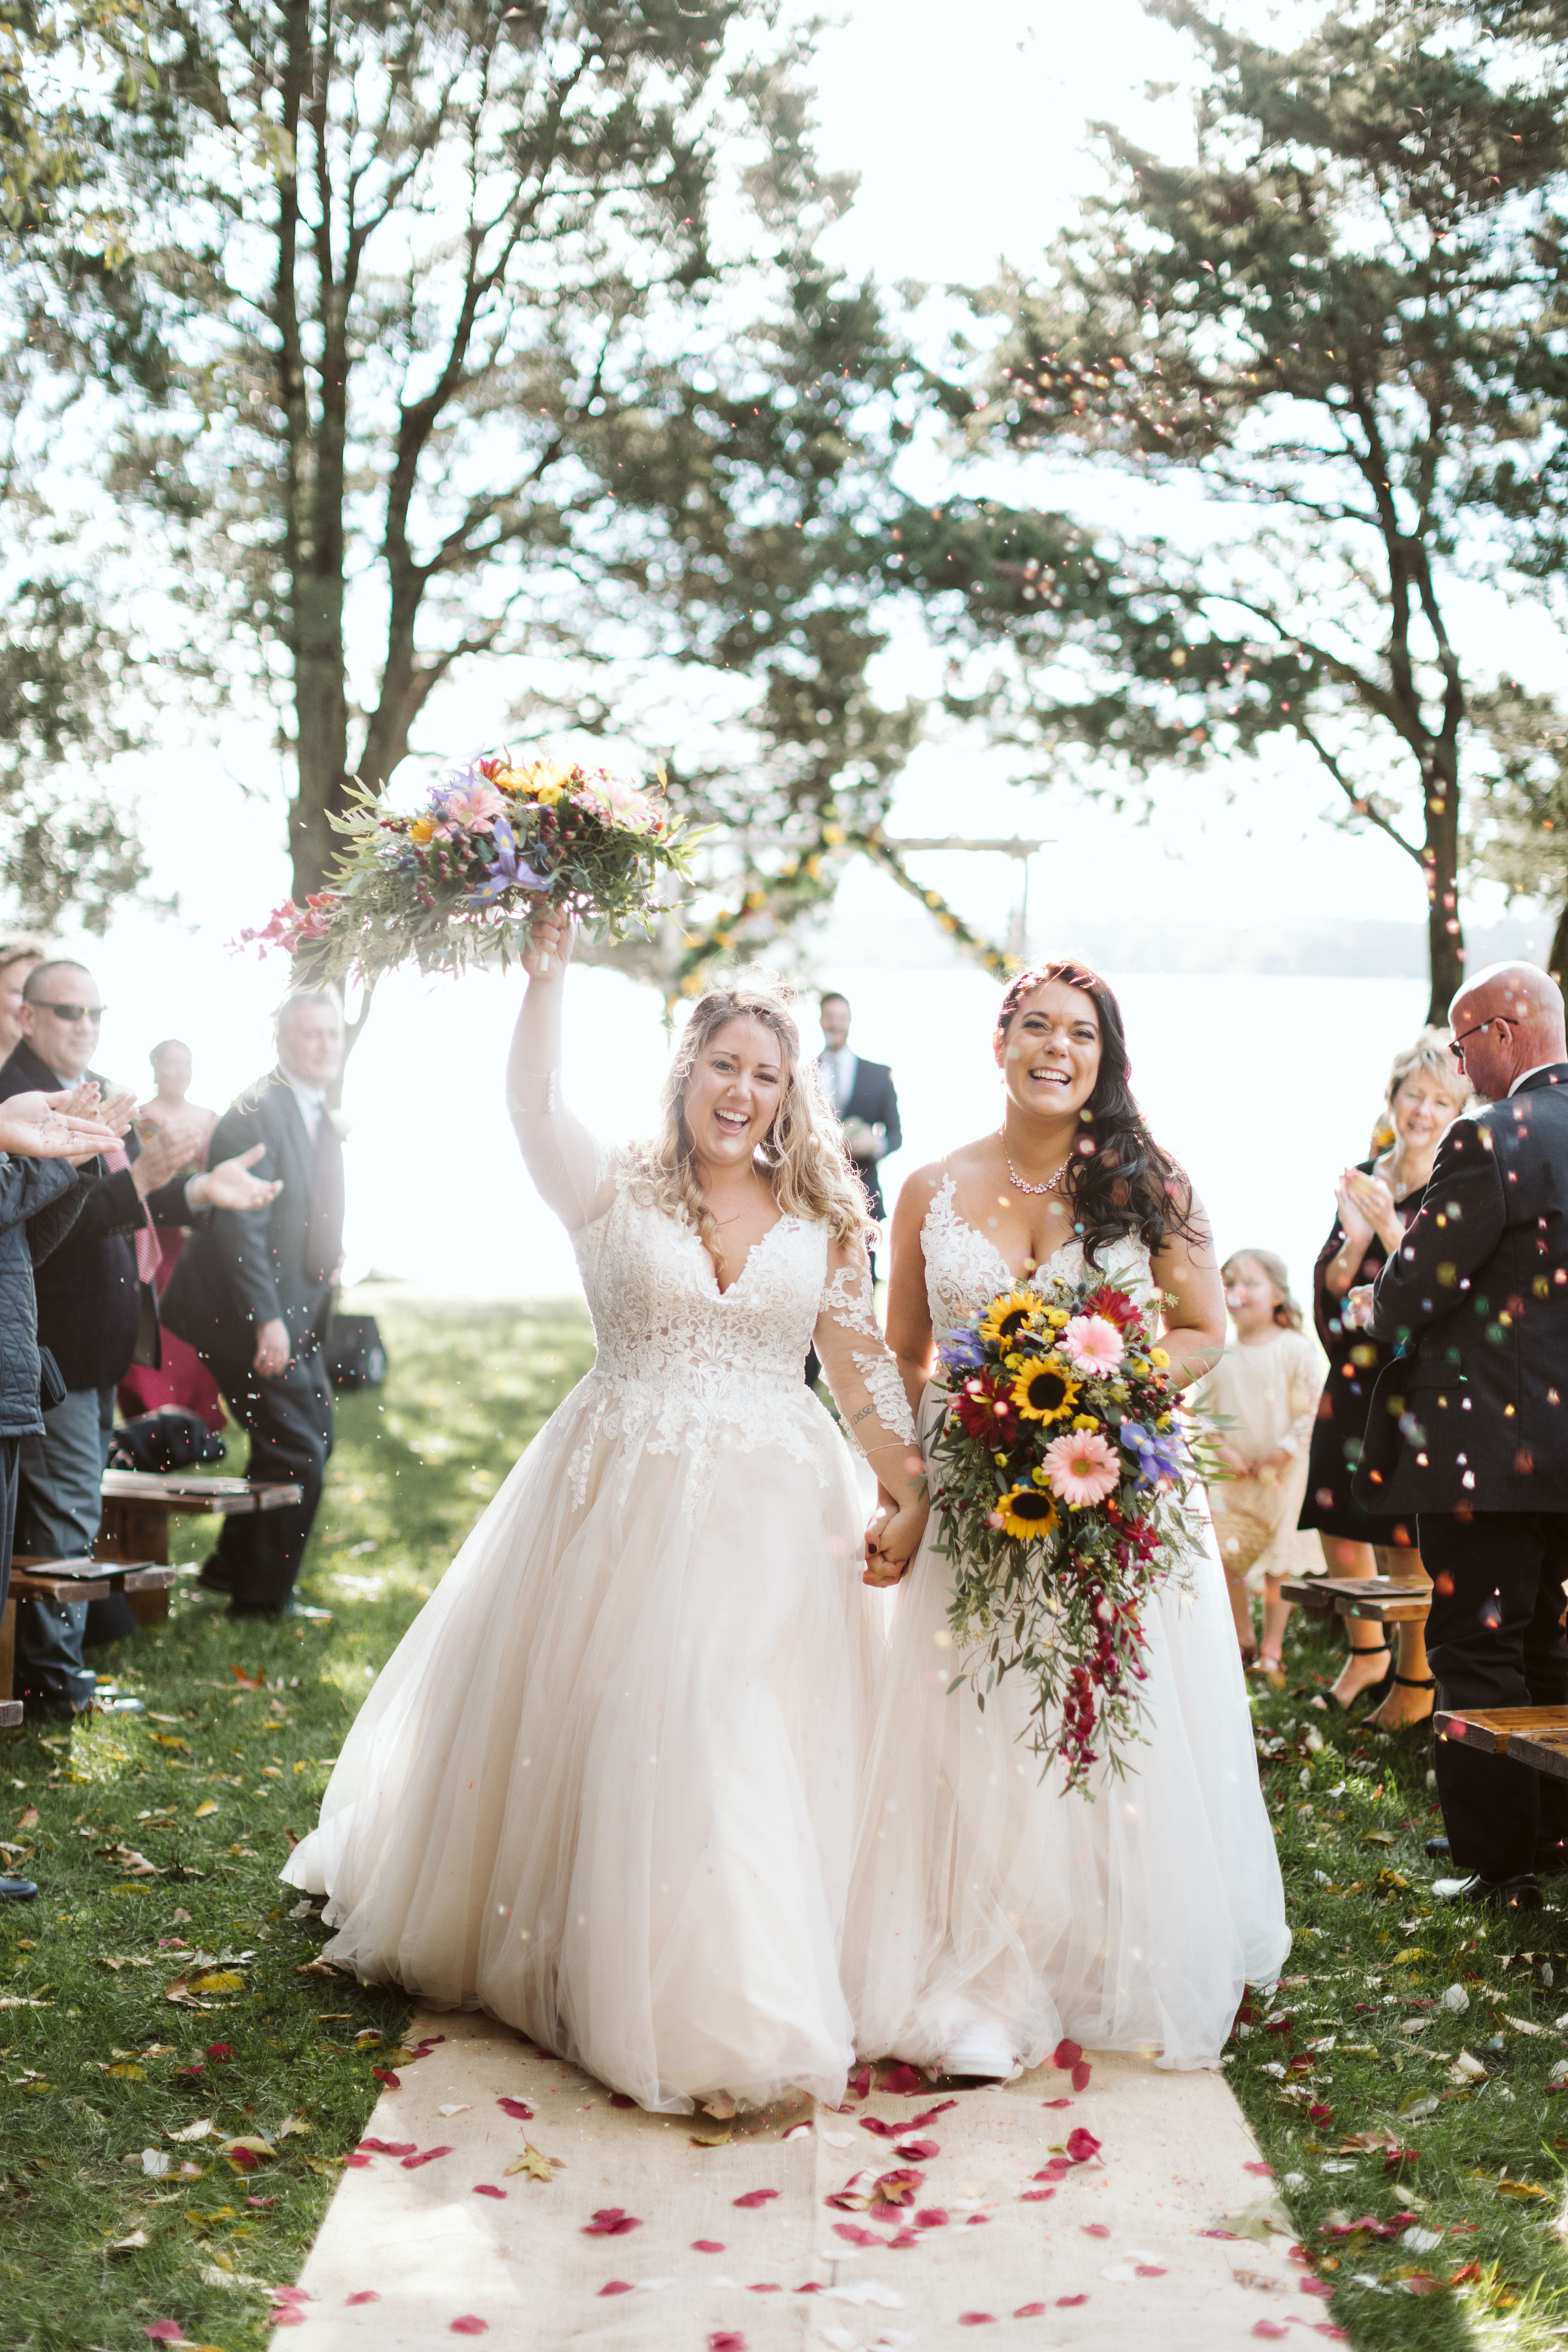 Rachel + Chelsea celebrating their first moments as newlyweds at their Mount Hope Farm wedding (Bristol, RI)